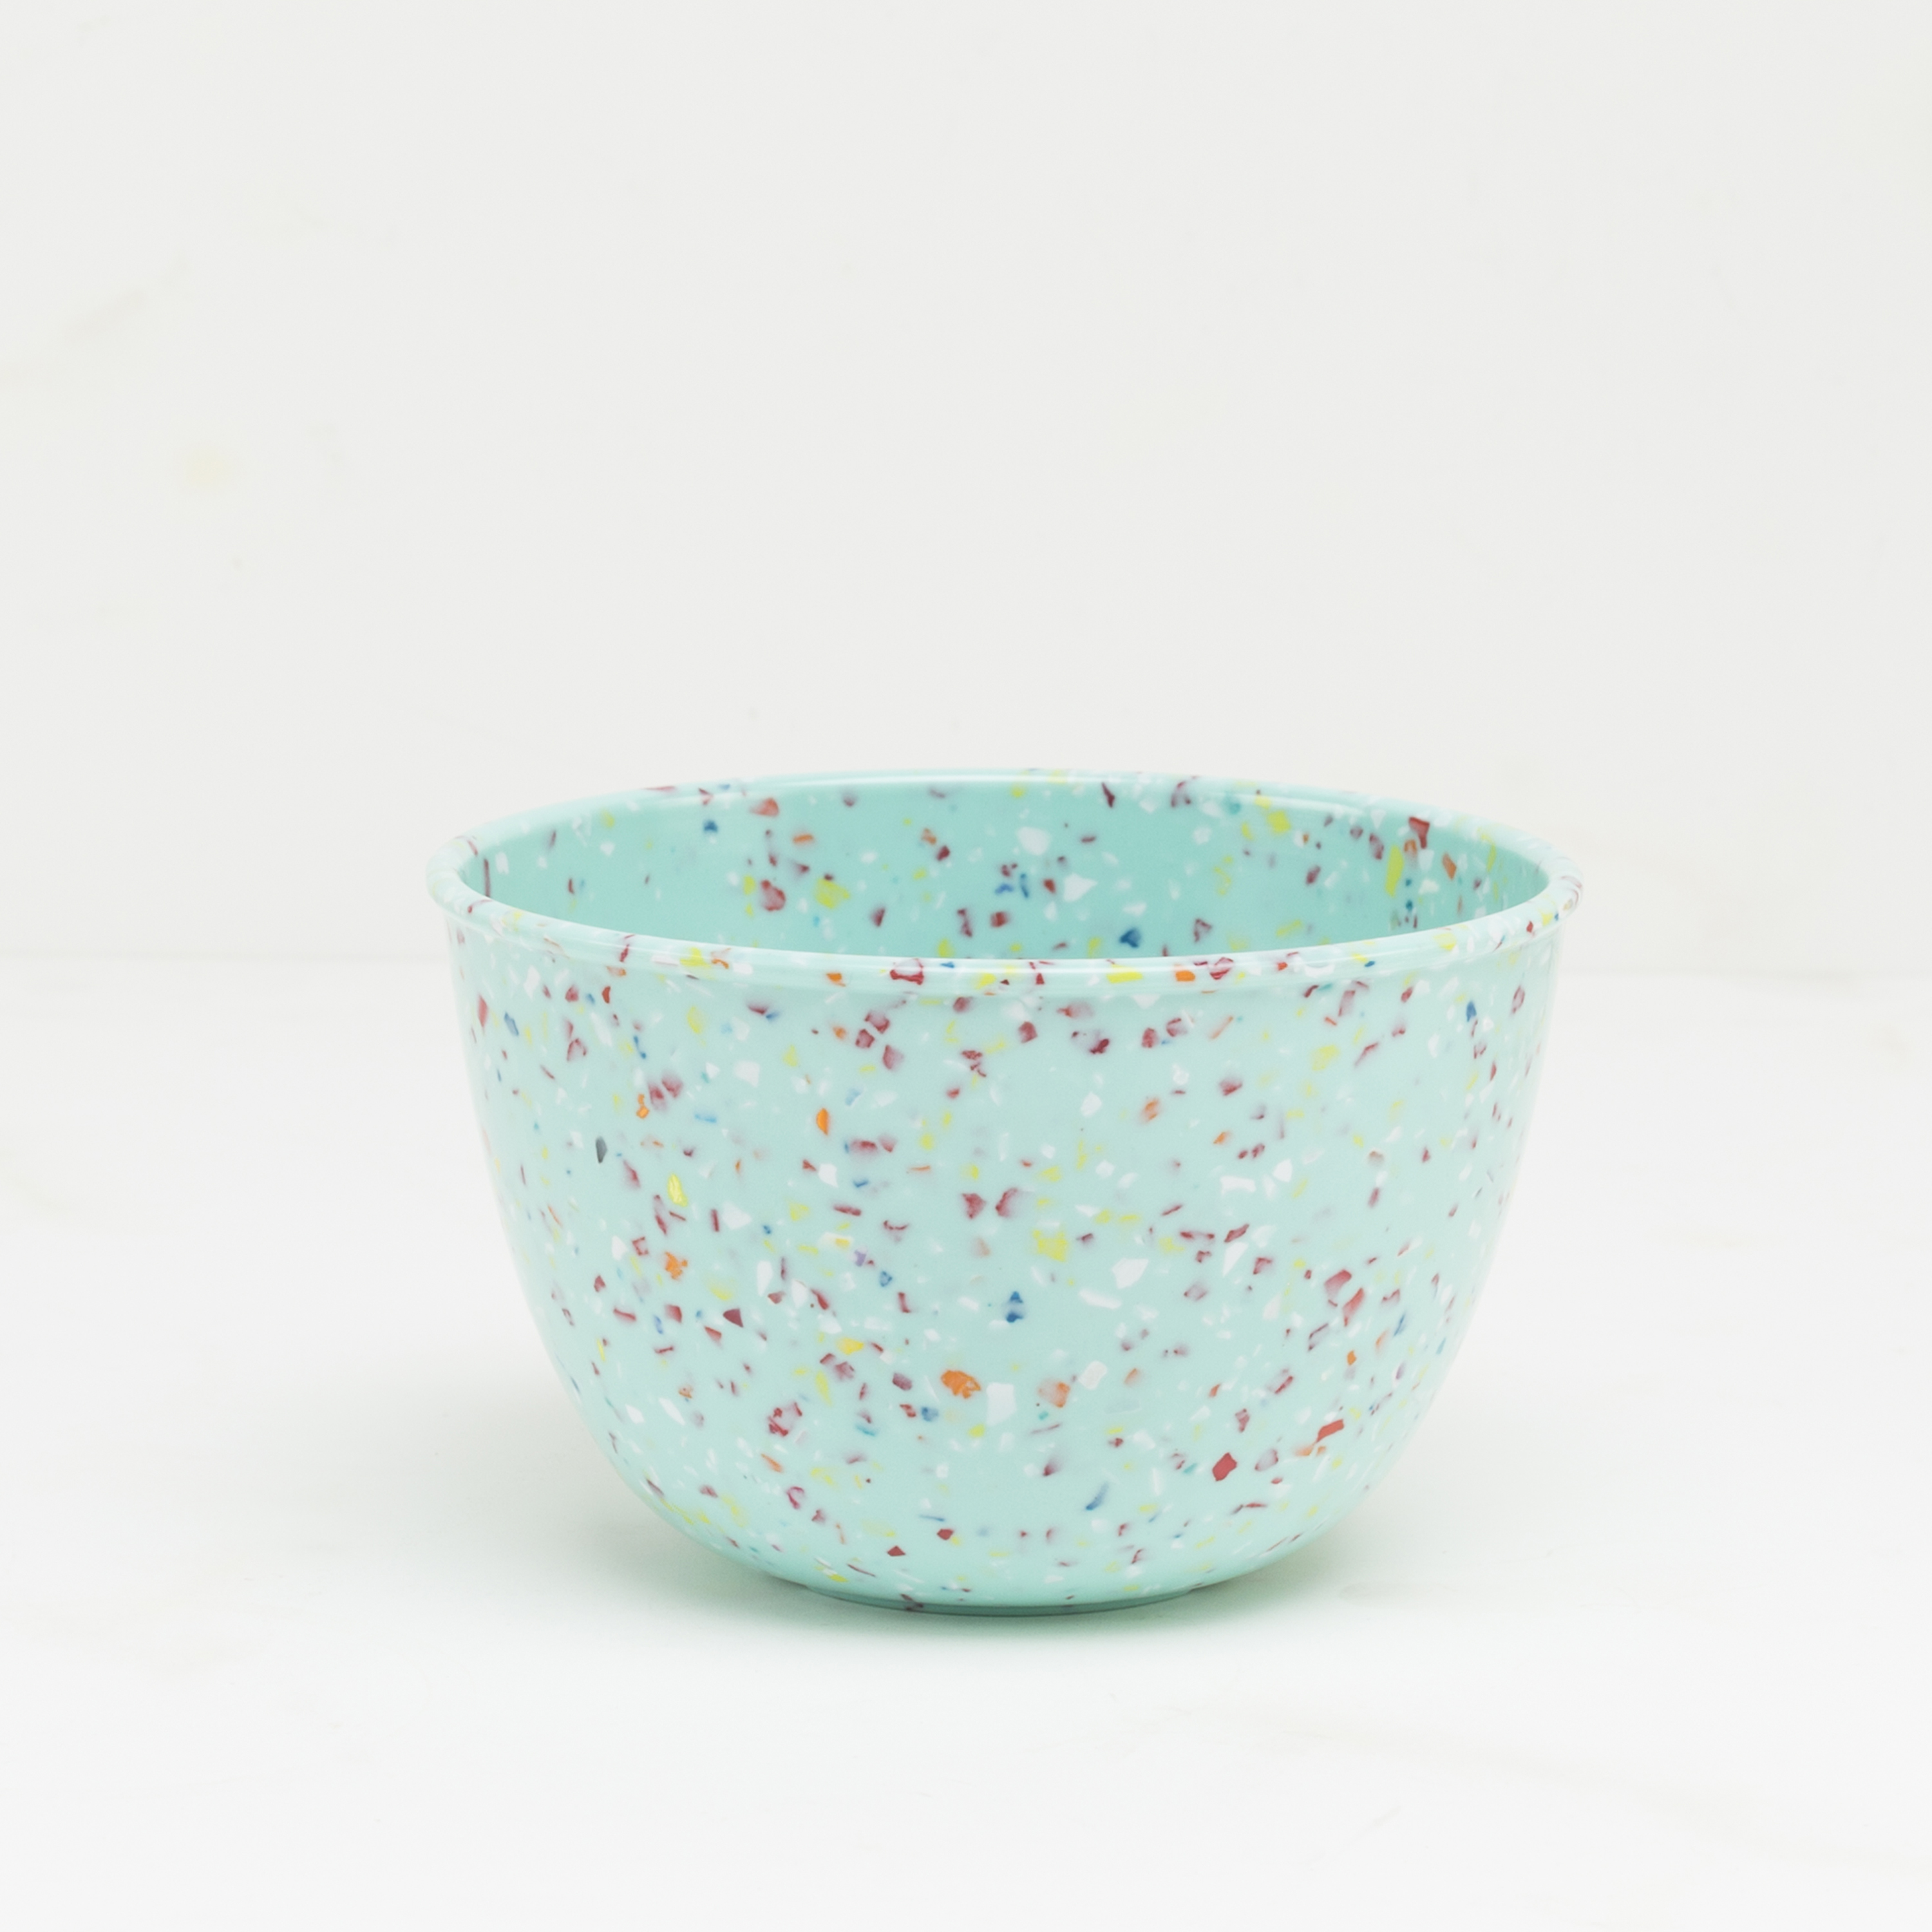 Confetti 24 ounce Soup Bowl, Mint, 6-piece set slideshow image 11